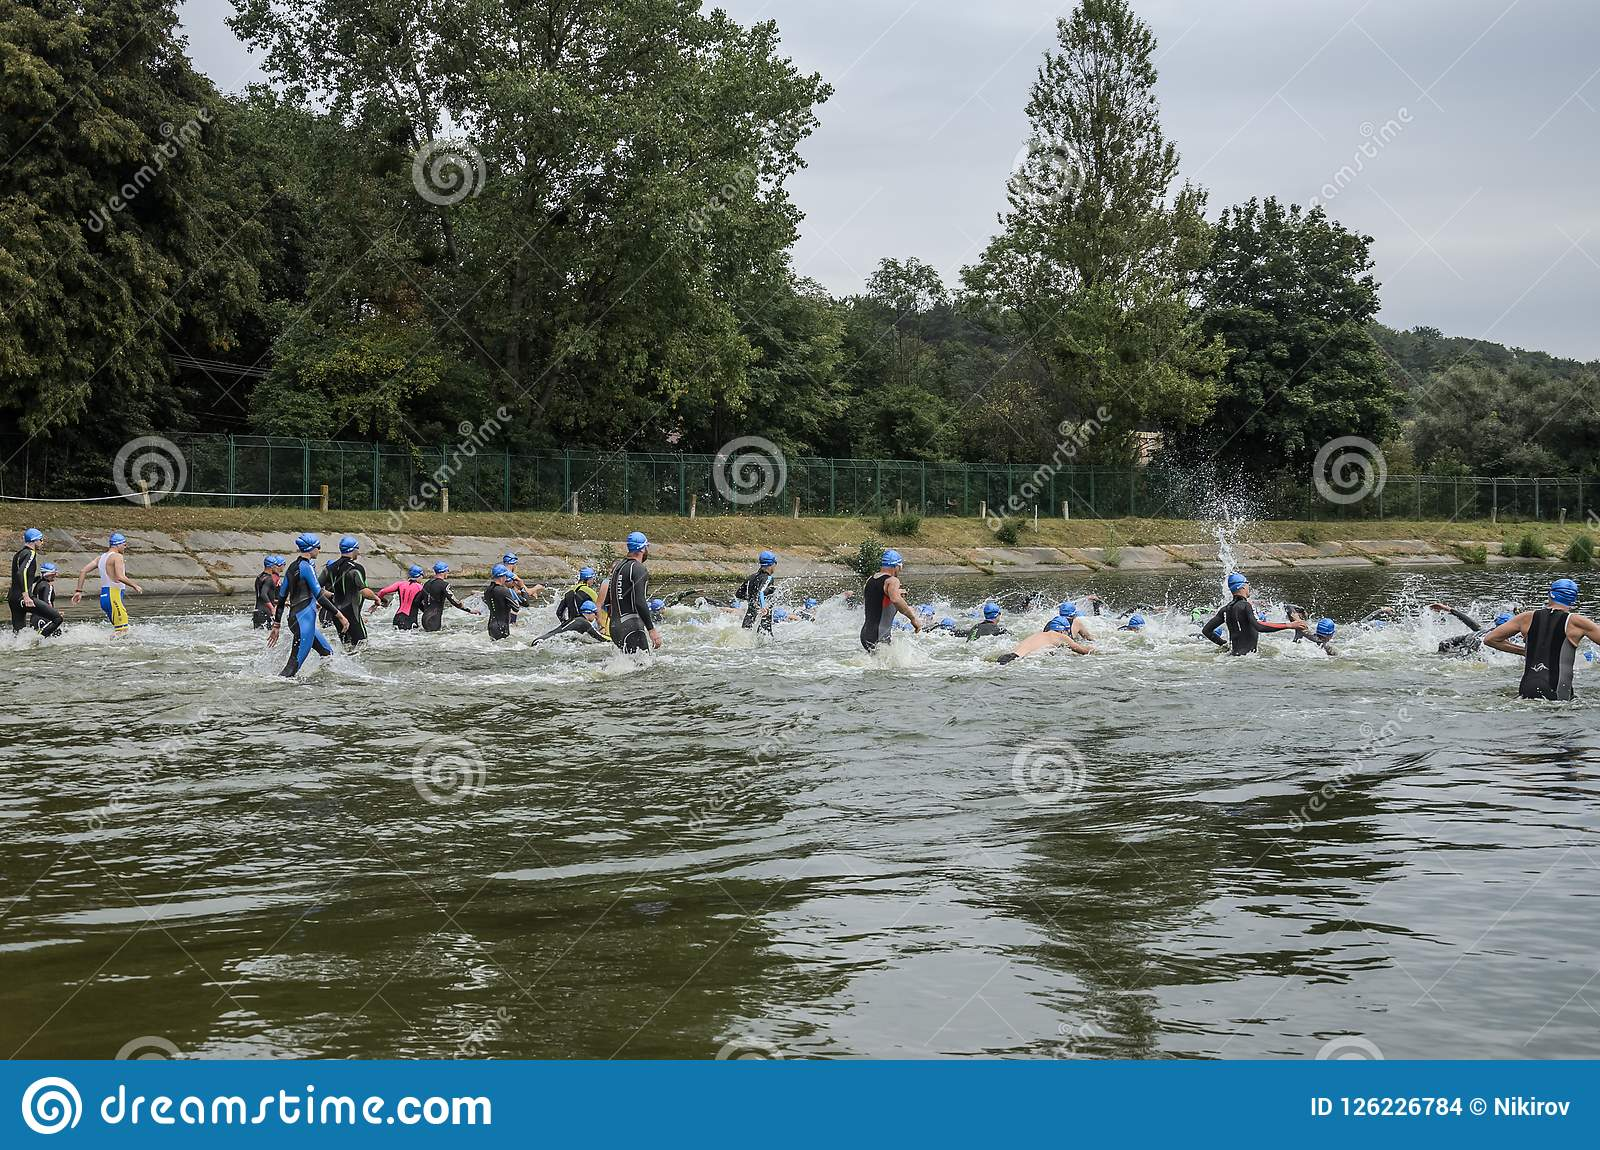 UKRAINE, LVIV - SEPTEMBER 2018: Athletes in wetsuits at the start run into the water for a swim in the triathlon competition